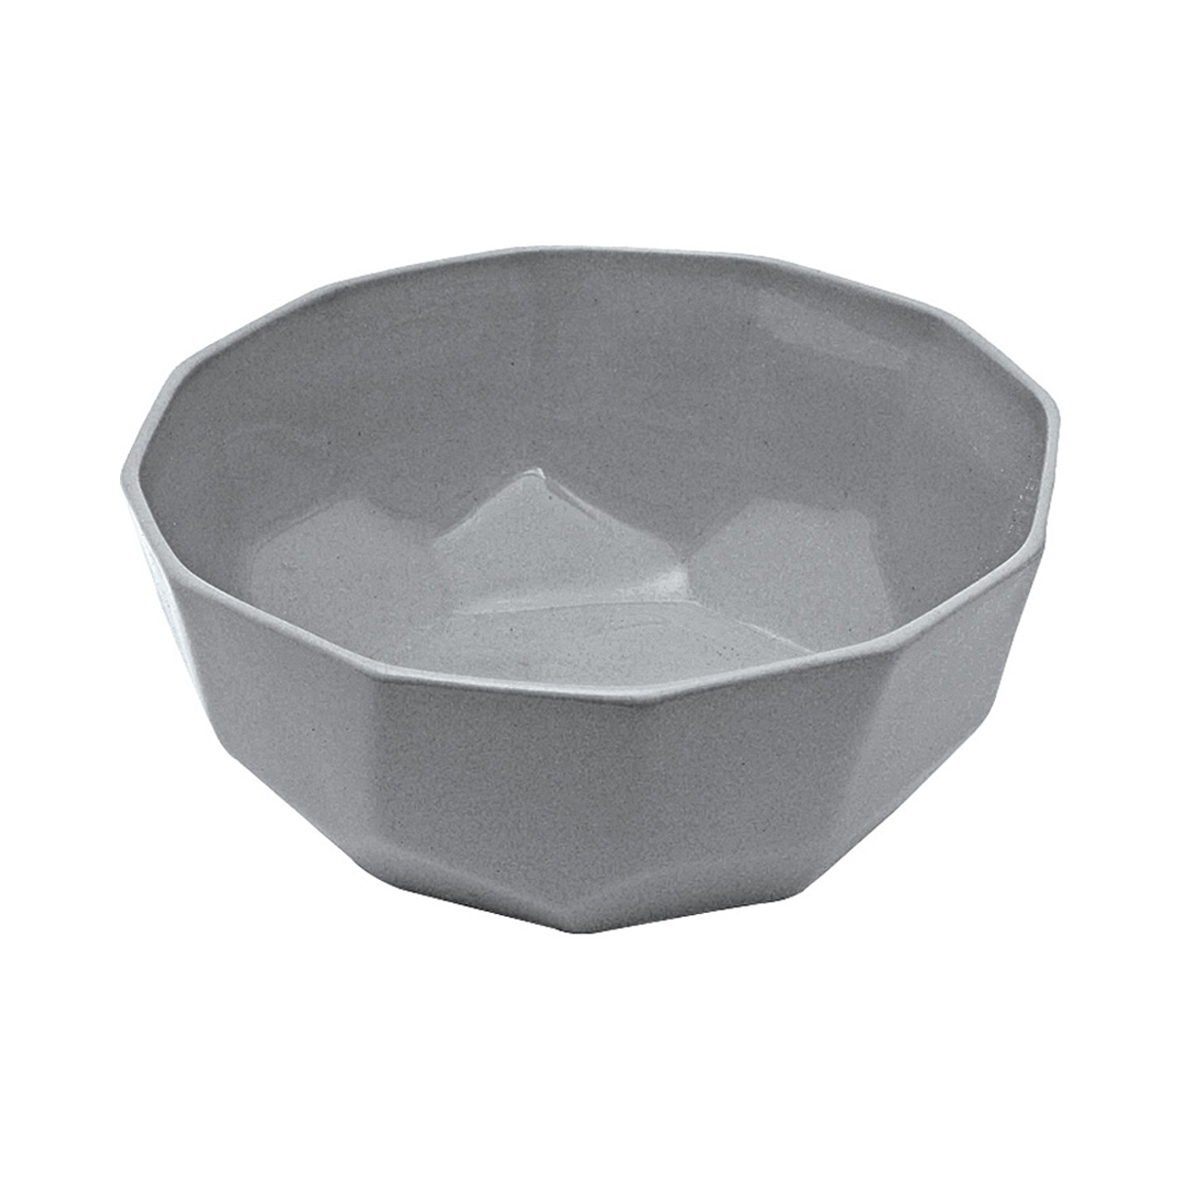 grey-ceramic-bowl